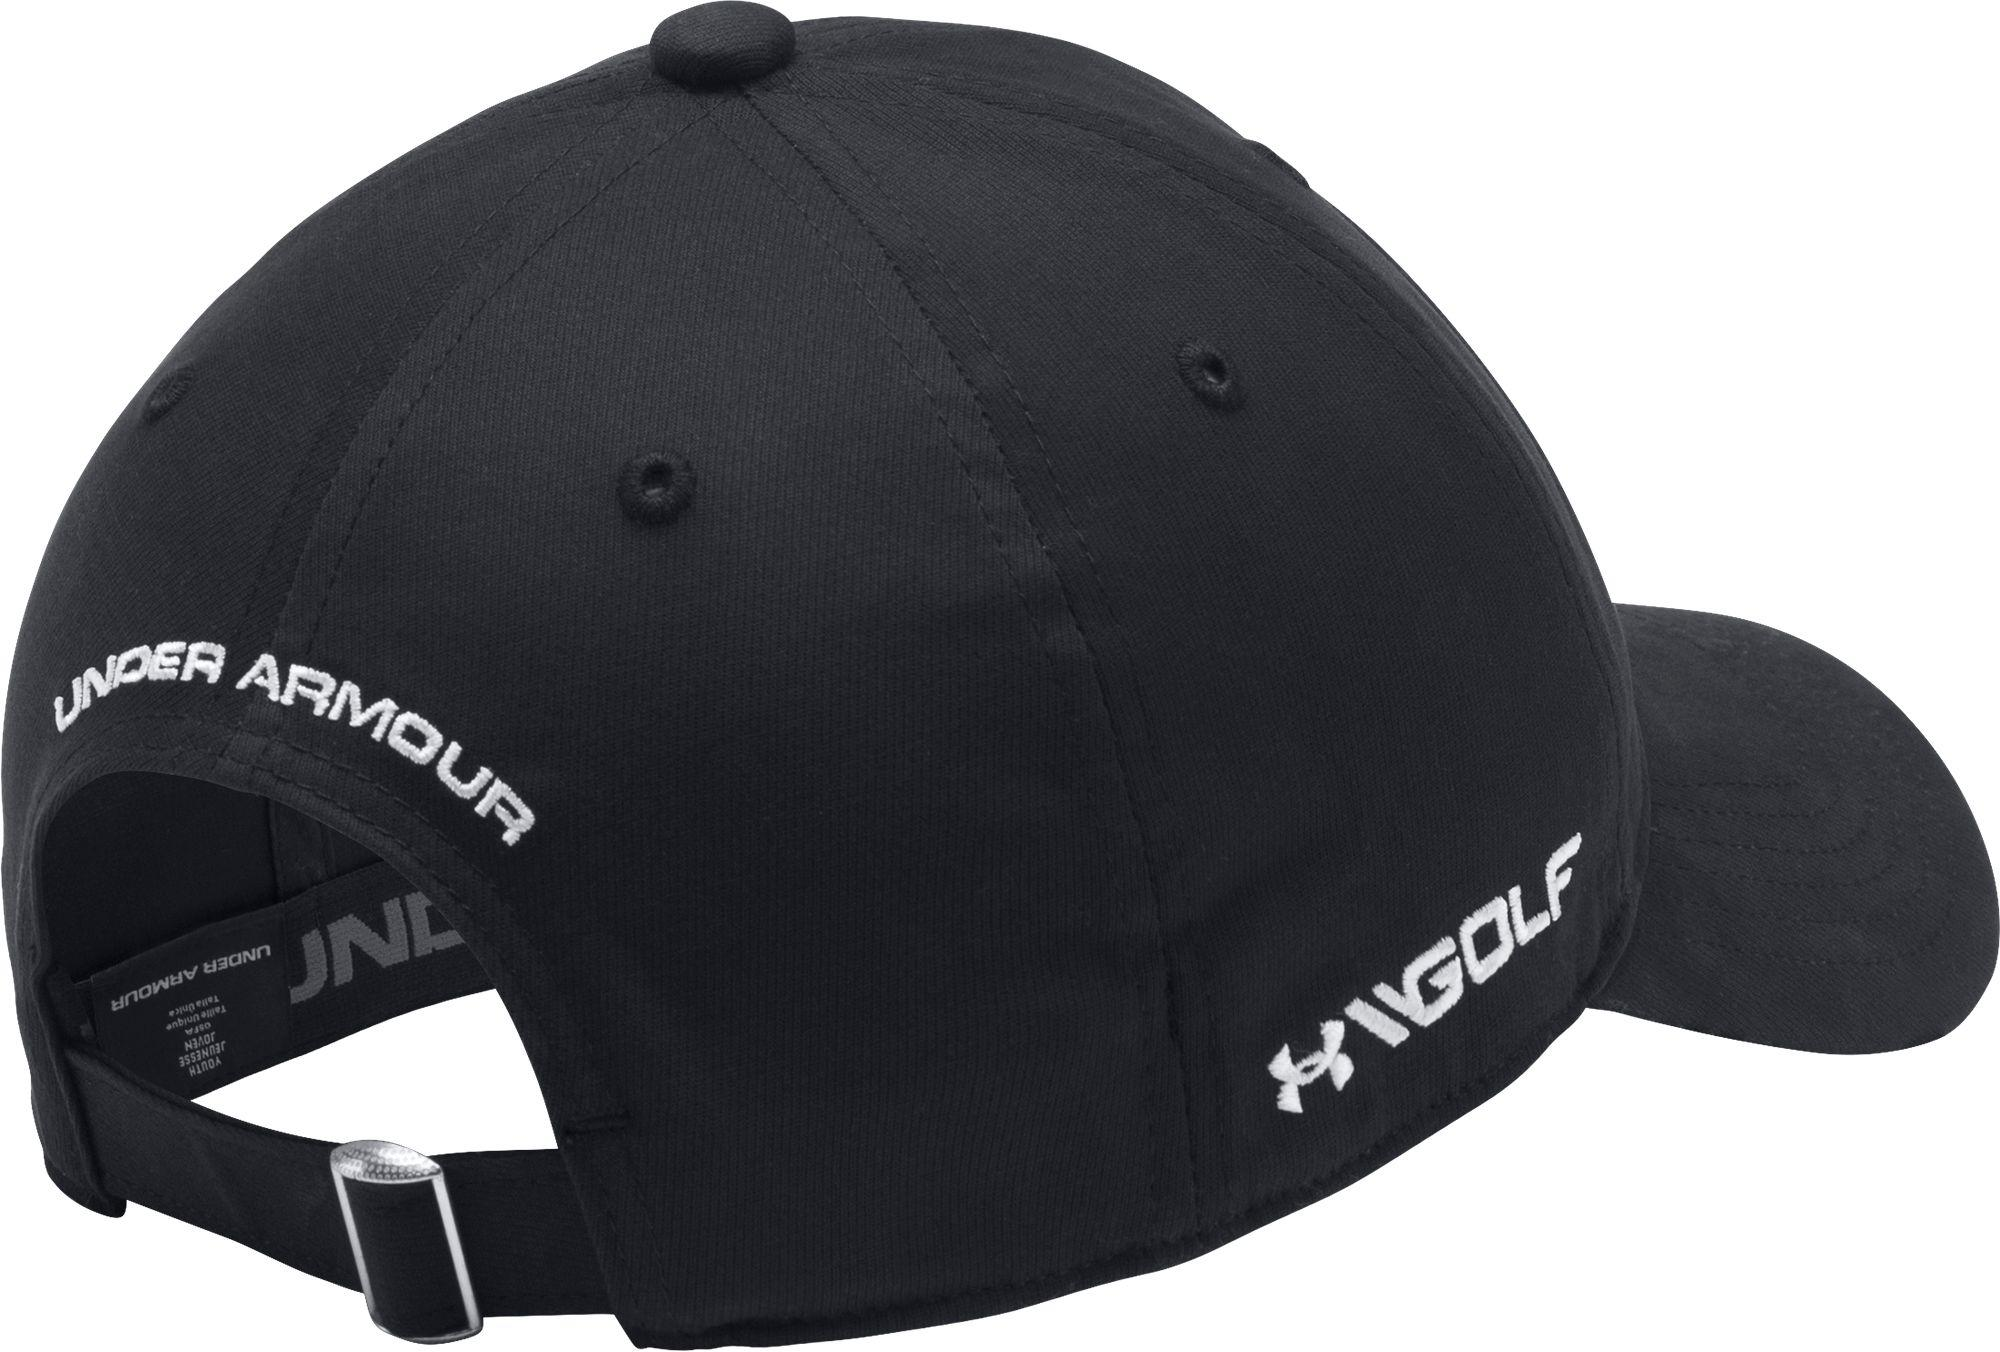 Lyst - Under Armour Oys  Chino Golf Hat in Black for Men 90adf72ef58d